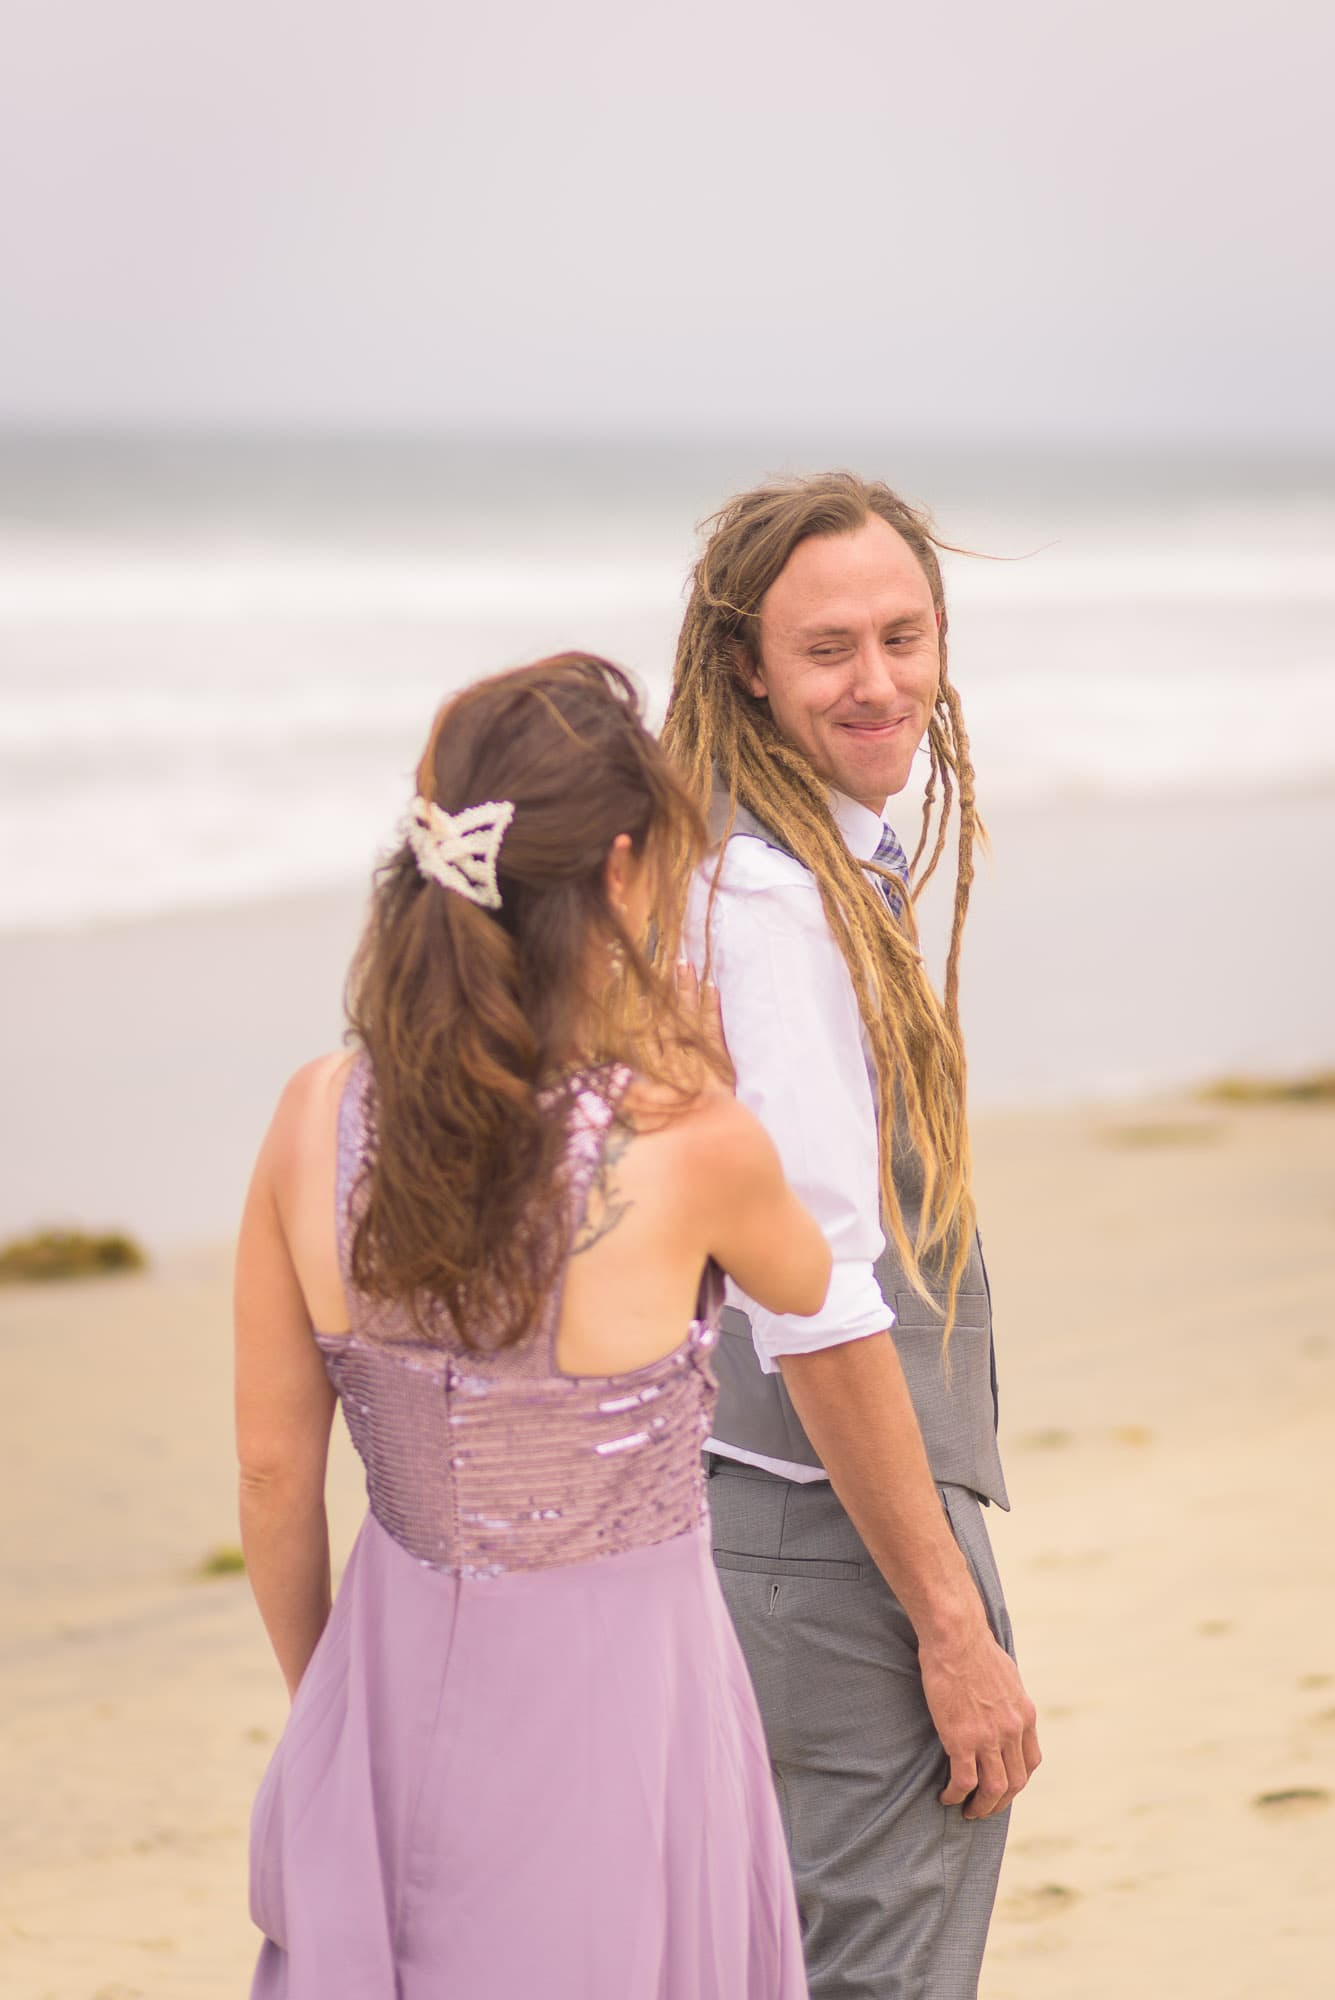 011_Alan_and_Heidi_Brianne_Nathan_San_Diego_Elopement